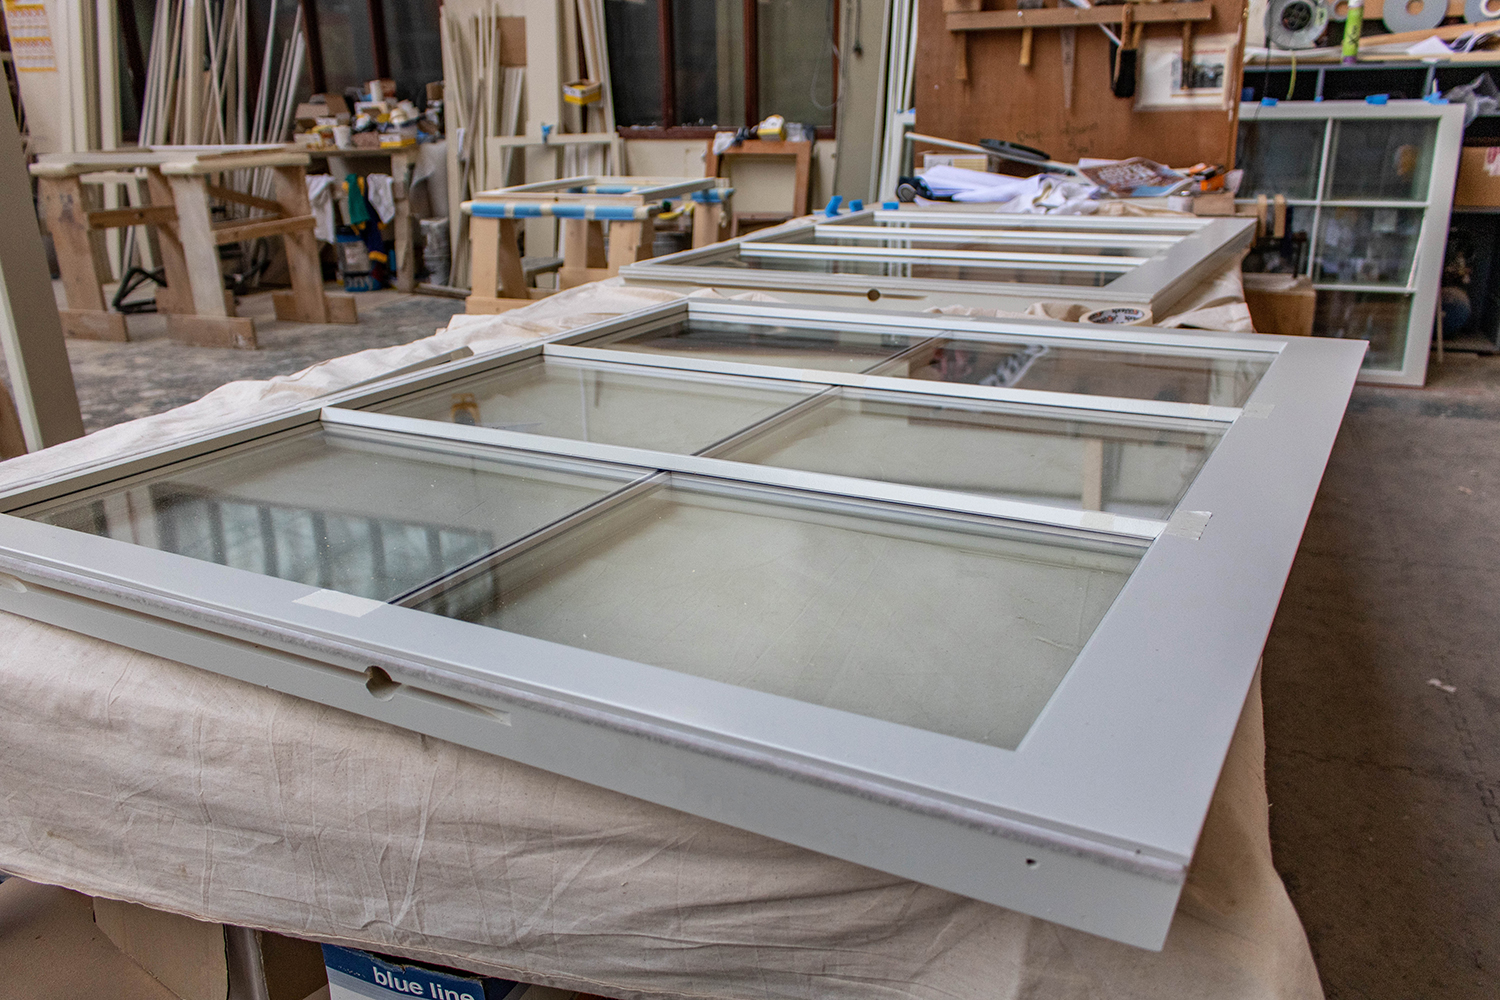 Set of window units in joinery workshop